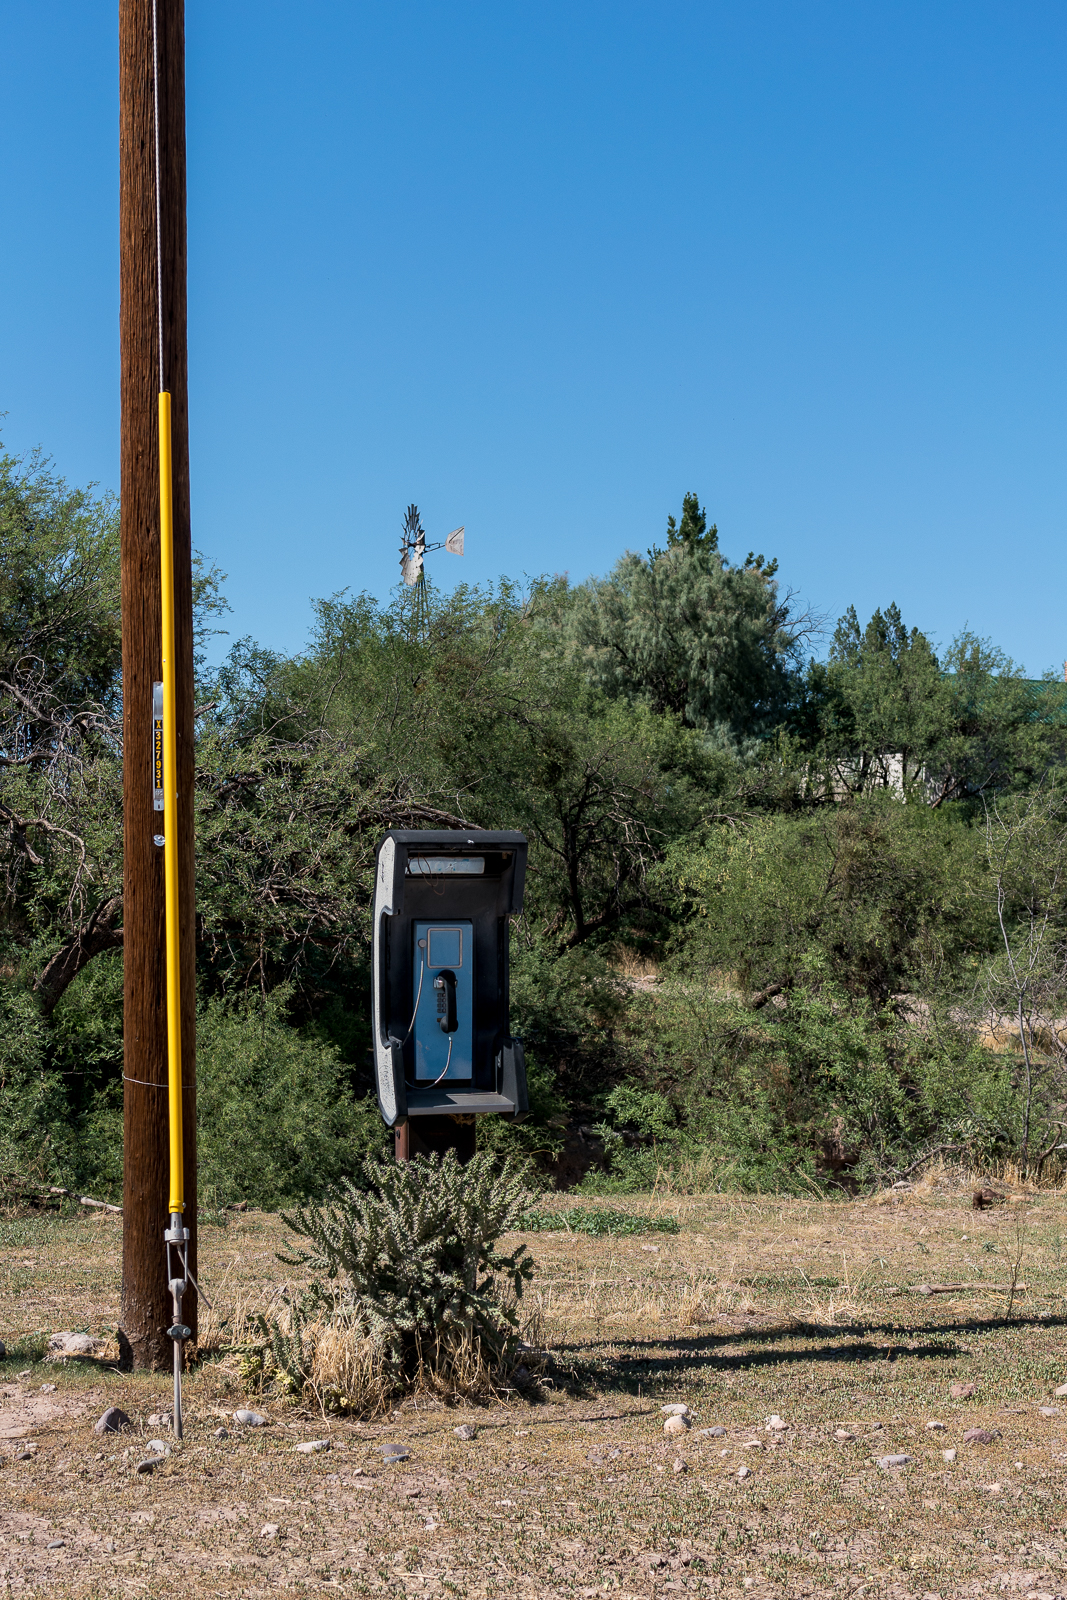 The payphone in Redington. July 2016.